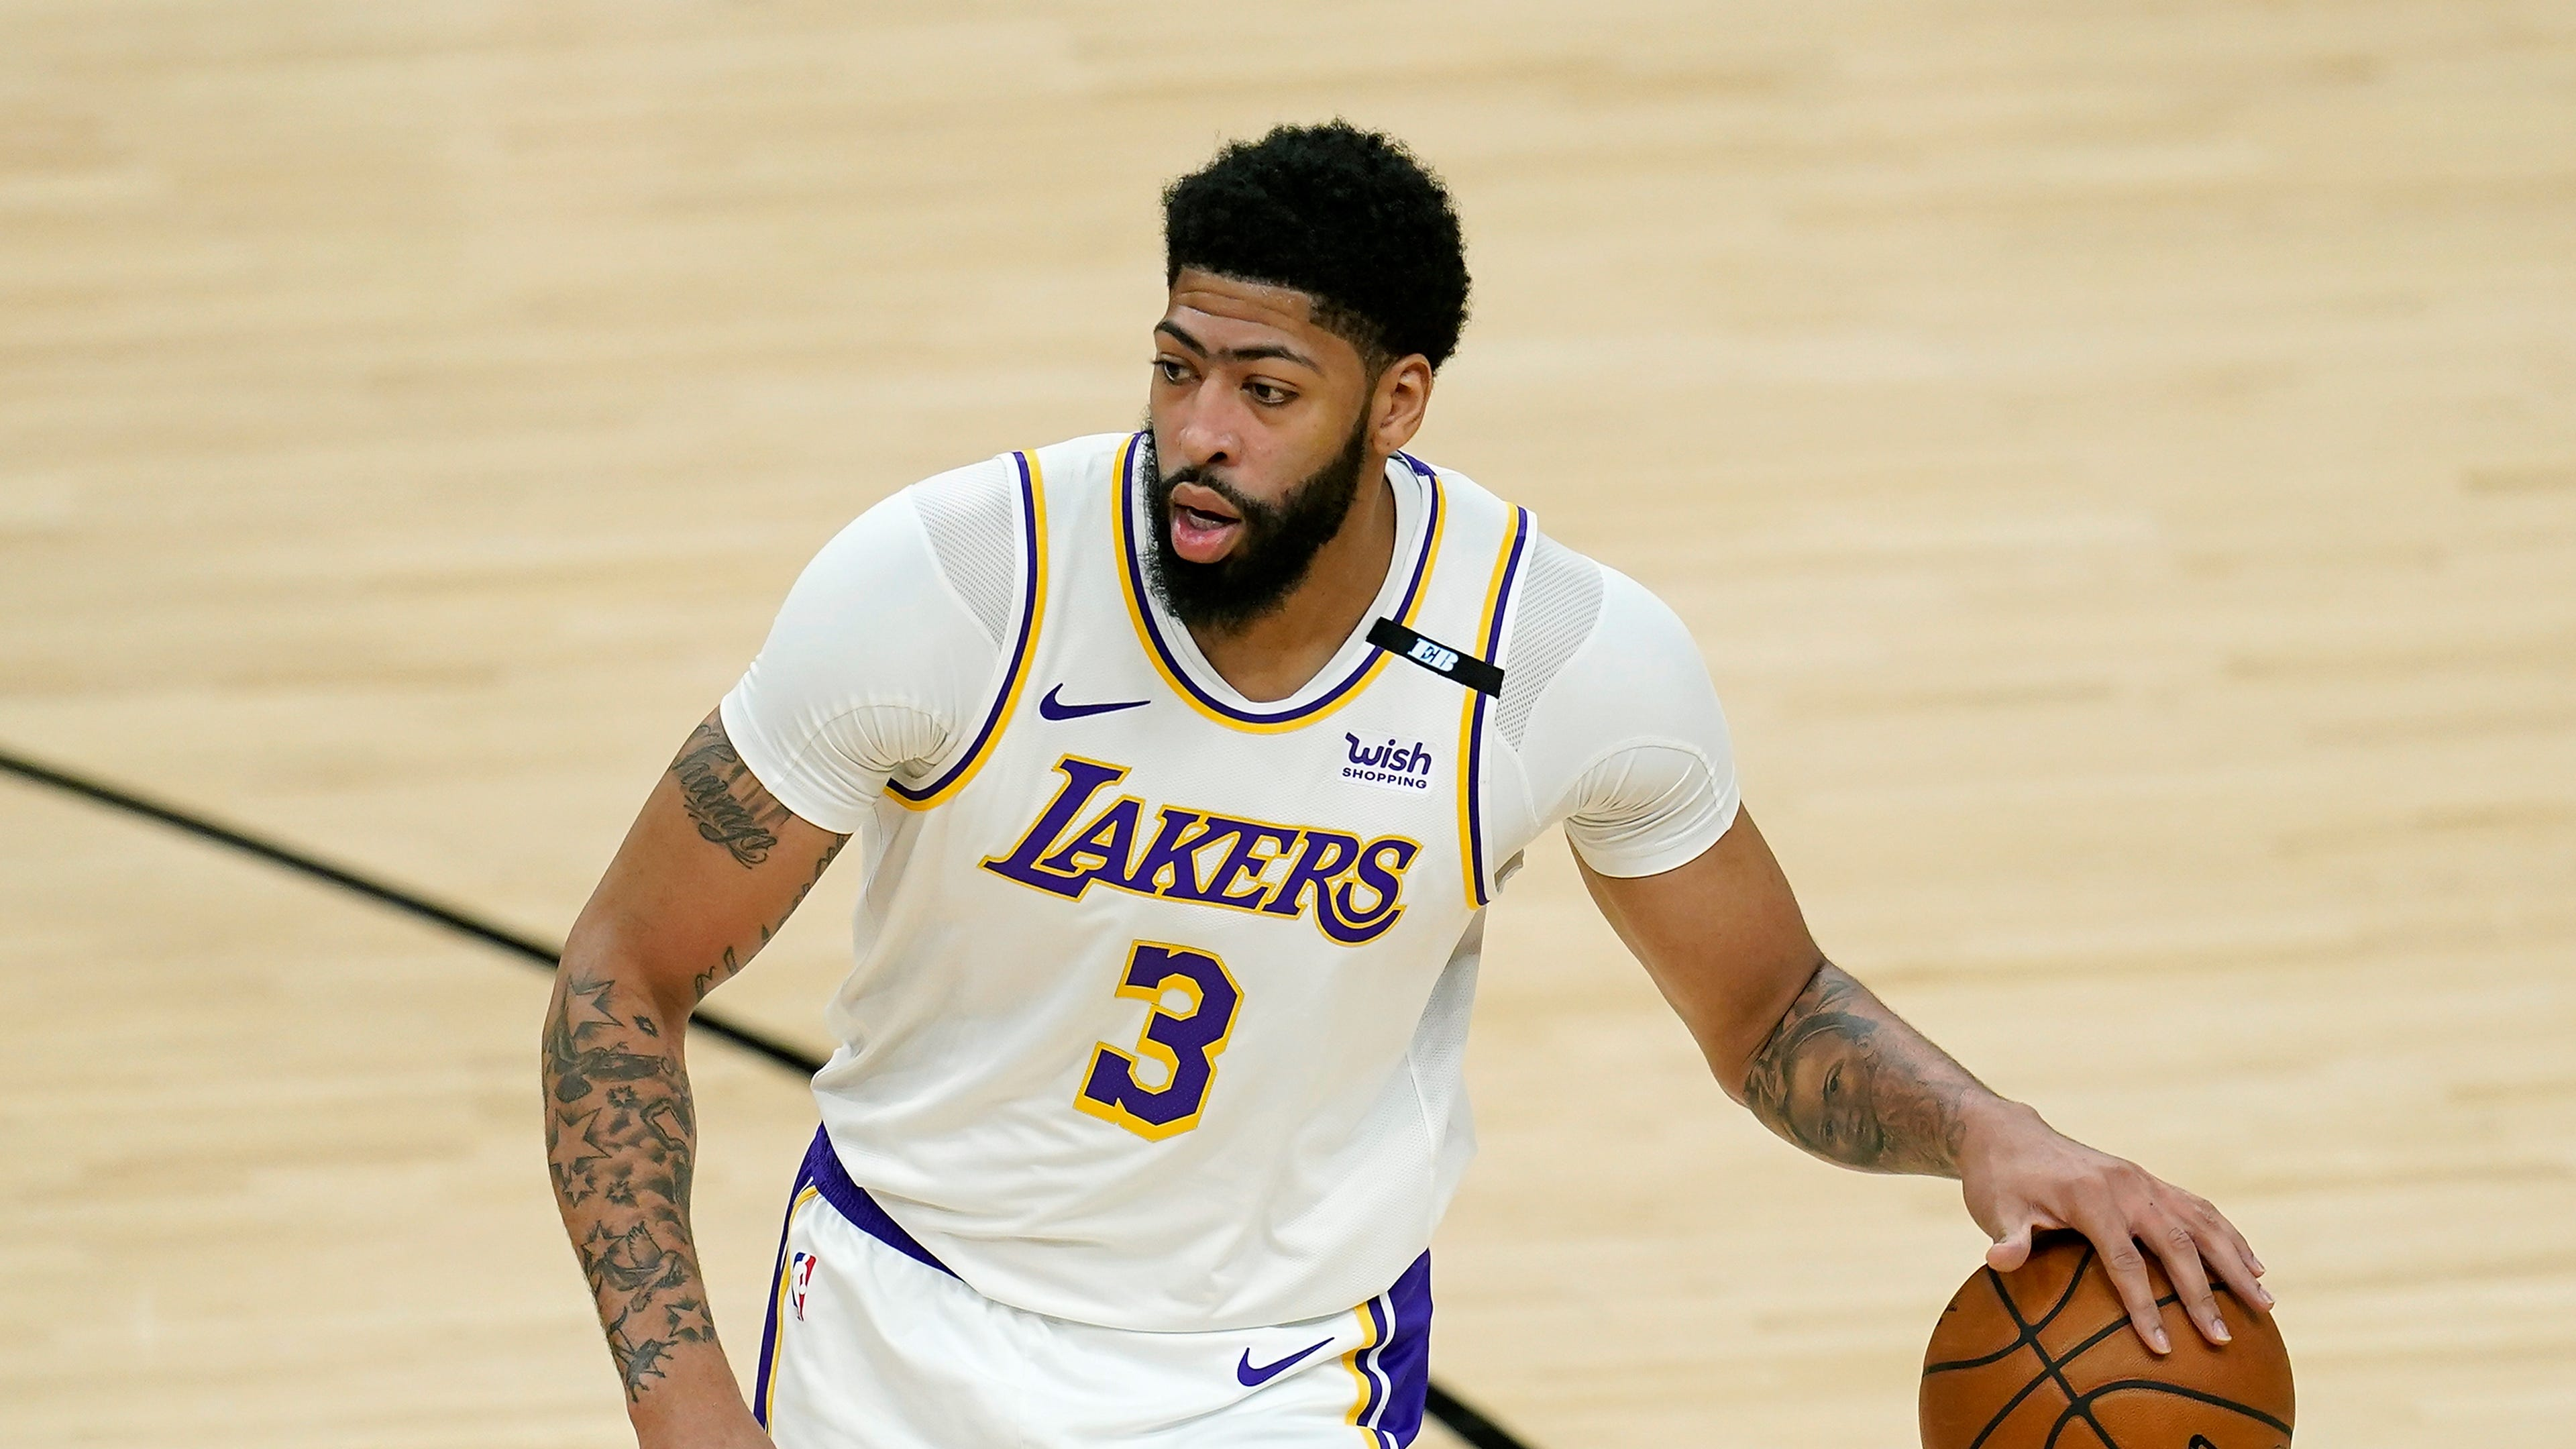 NBA Playoffs: Lakers' Anthony Davis returns for Game 6, but leaves after aggravating groin injury vs. Suns